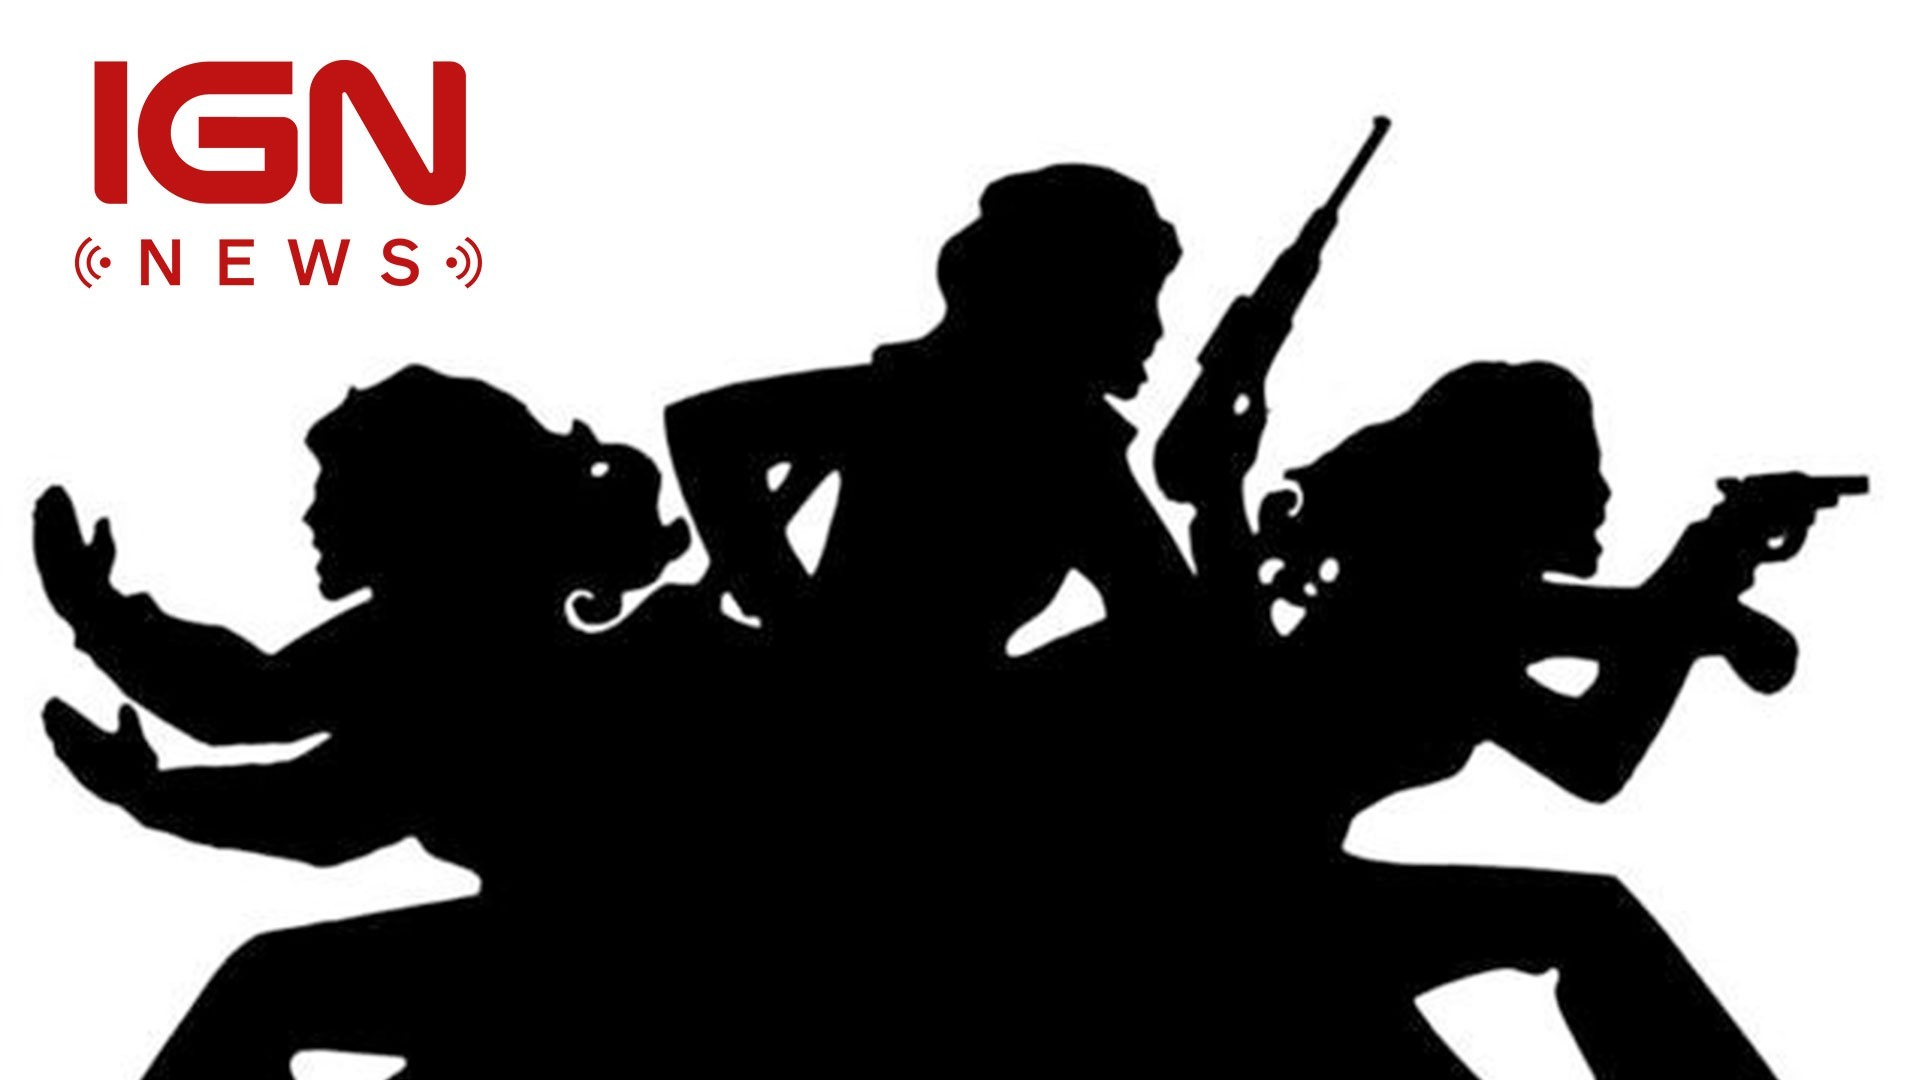 Charlie-s angels silhouette clipart free library Charlies Angels Silhouette Clip Art - Worl #294284 - Clipartimage.com free library